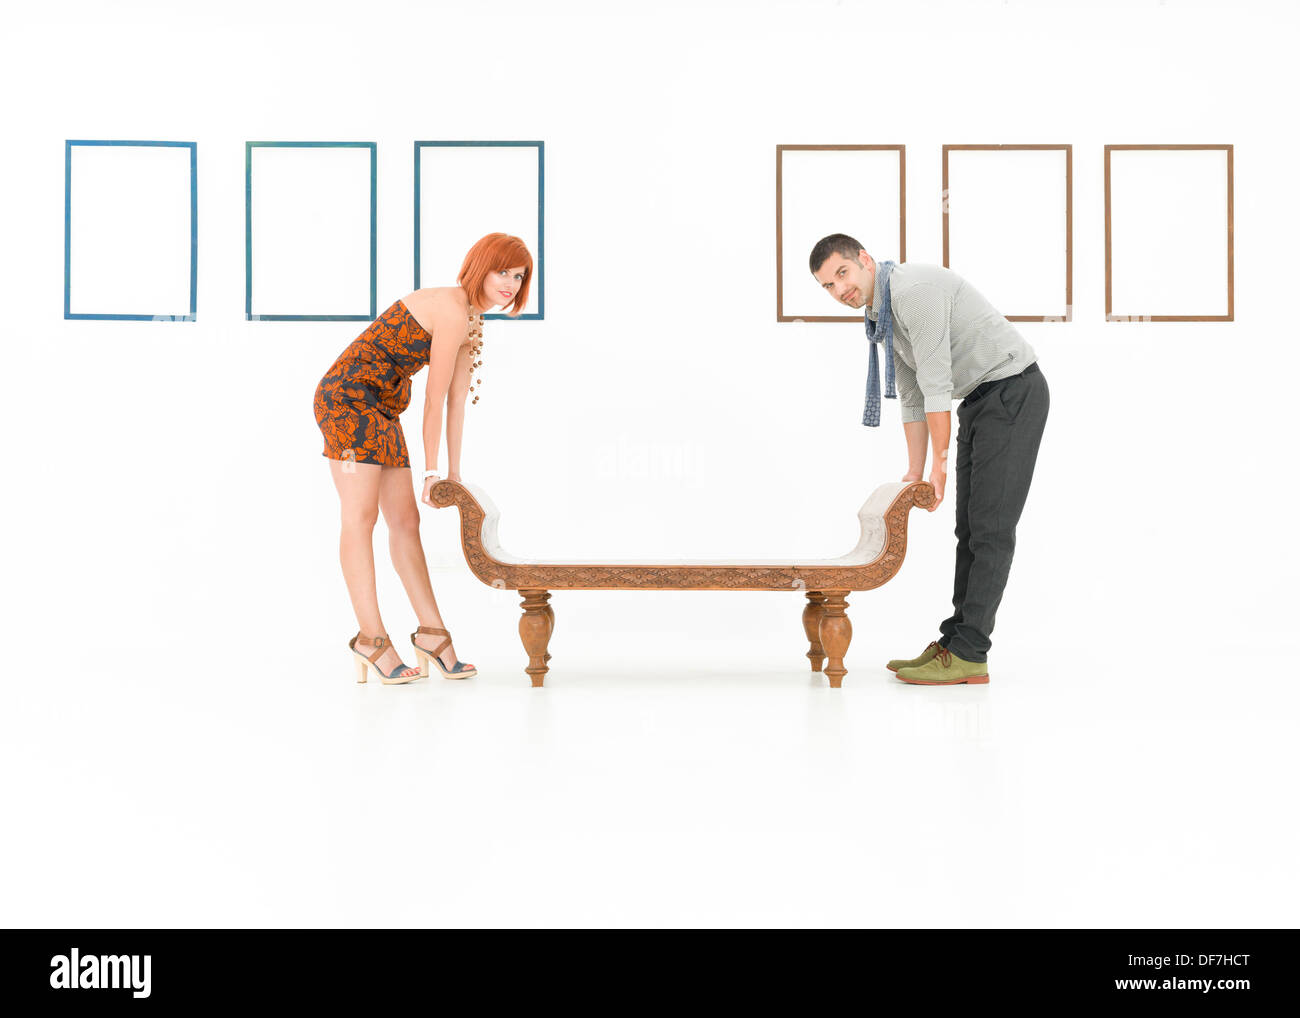 two caucasian people trying to lift up a wooden bench in a white room with empty frames displayed on walls - Stock Image